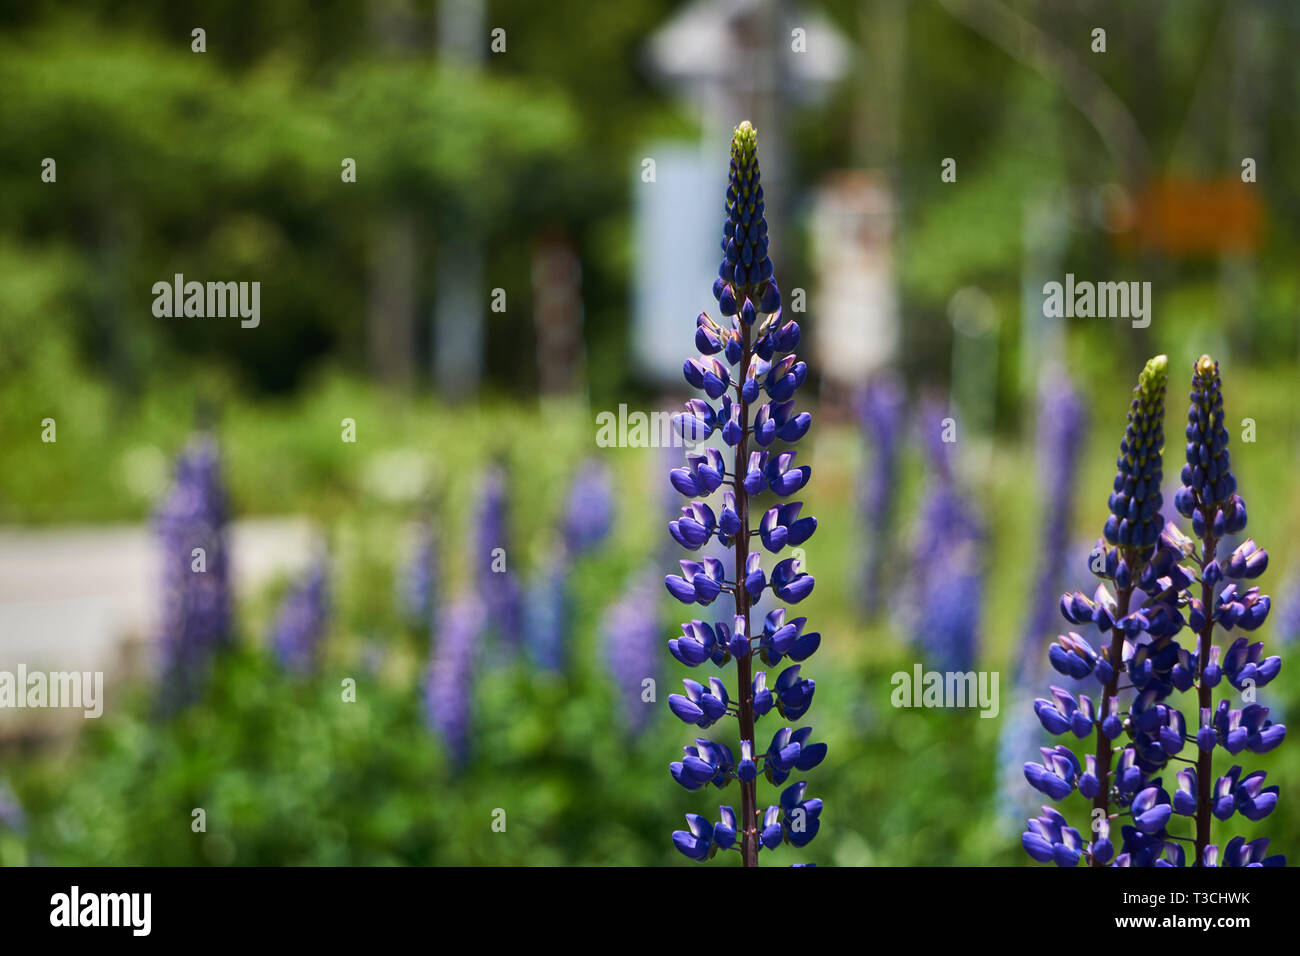 Tall, purple lupinus polyphyllus (large-leaved lupine, big-leaved lupine, many-leaved lupine) flowers growing in a garden in Yuzawa, Niigata, Japan. Stock Photo